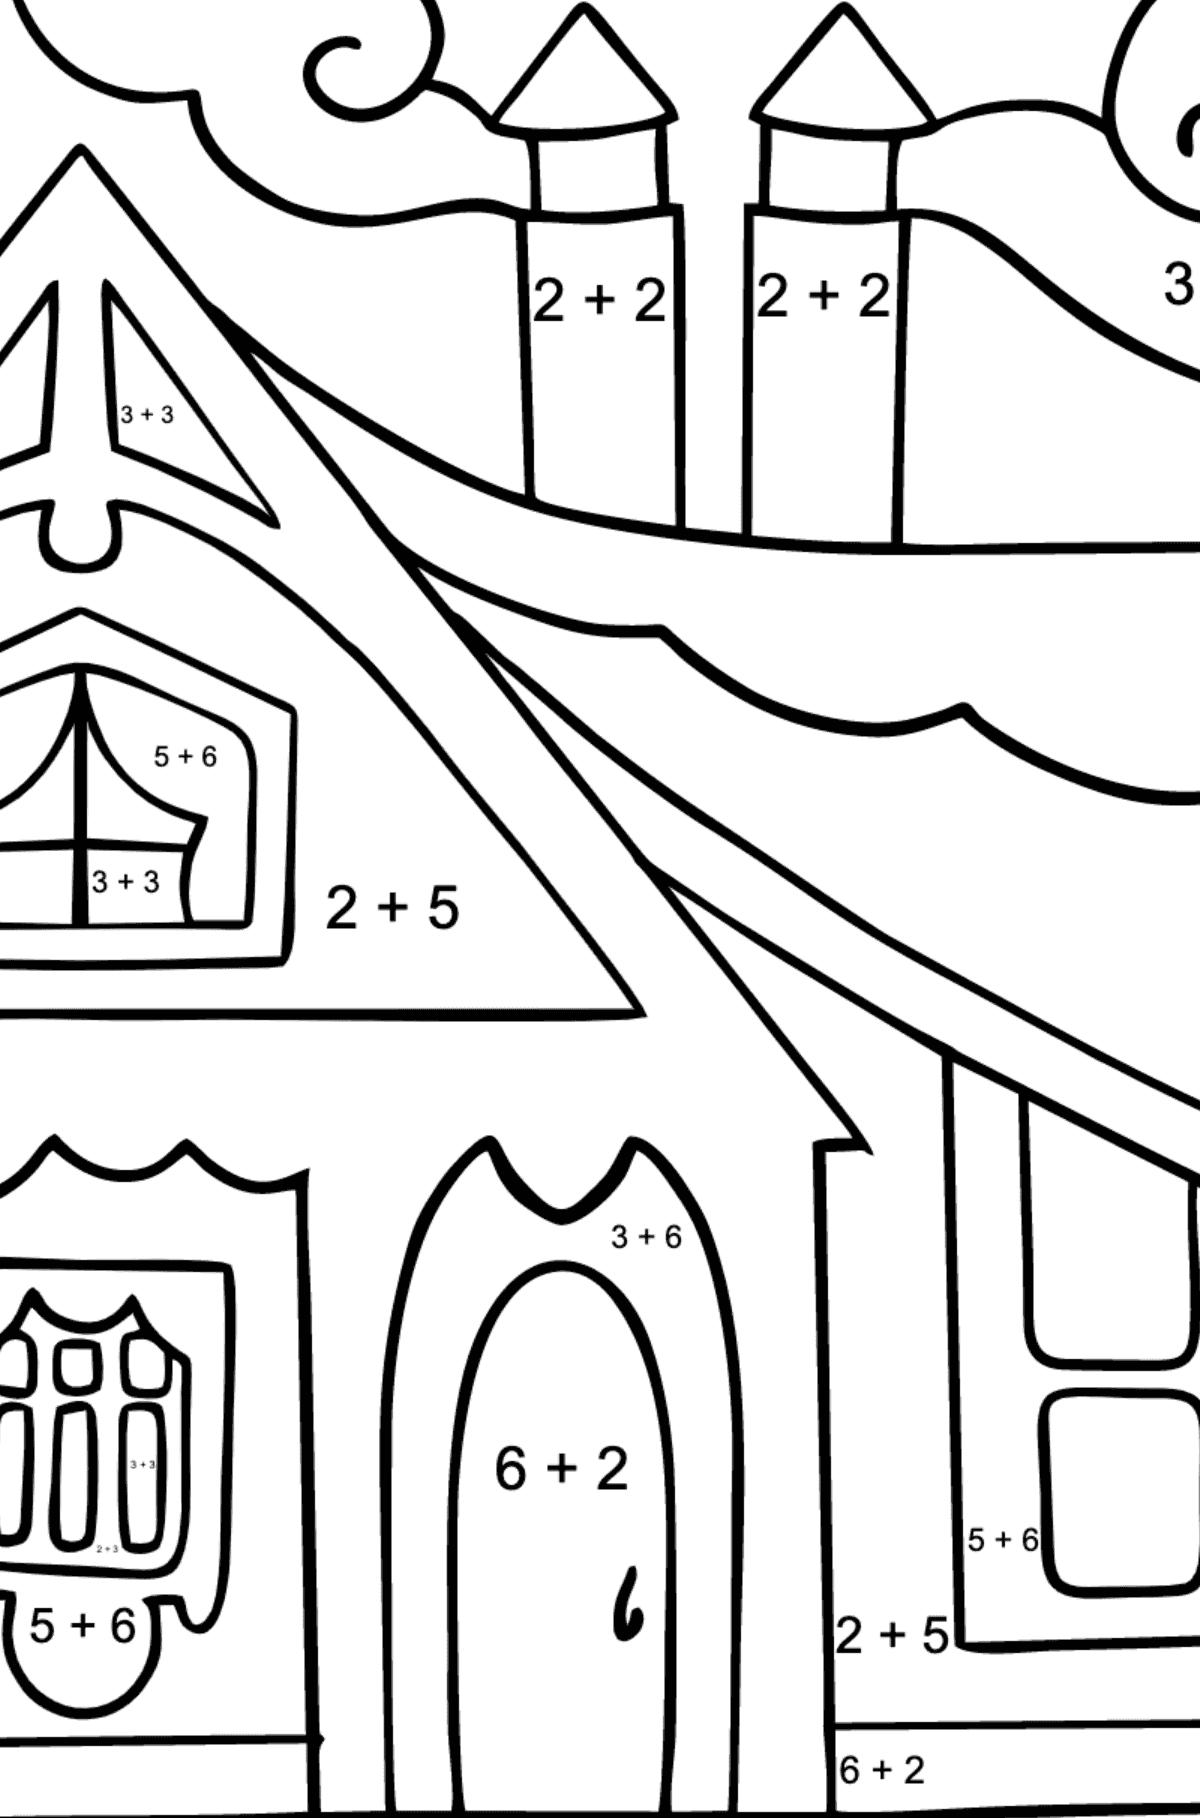 Coloring Page - A Tiny House - Math Coloring - Addition for Children